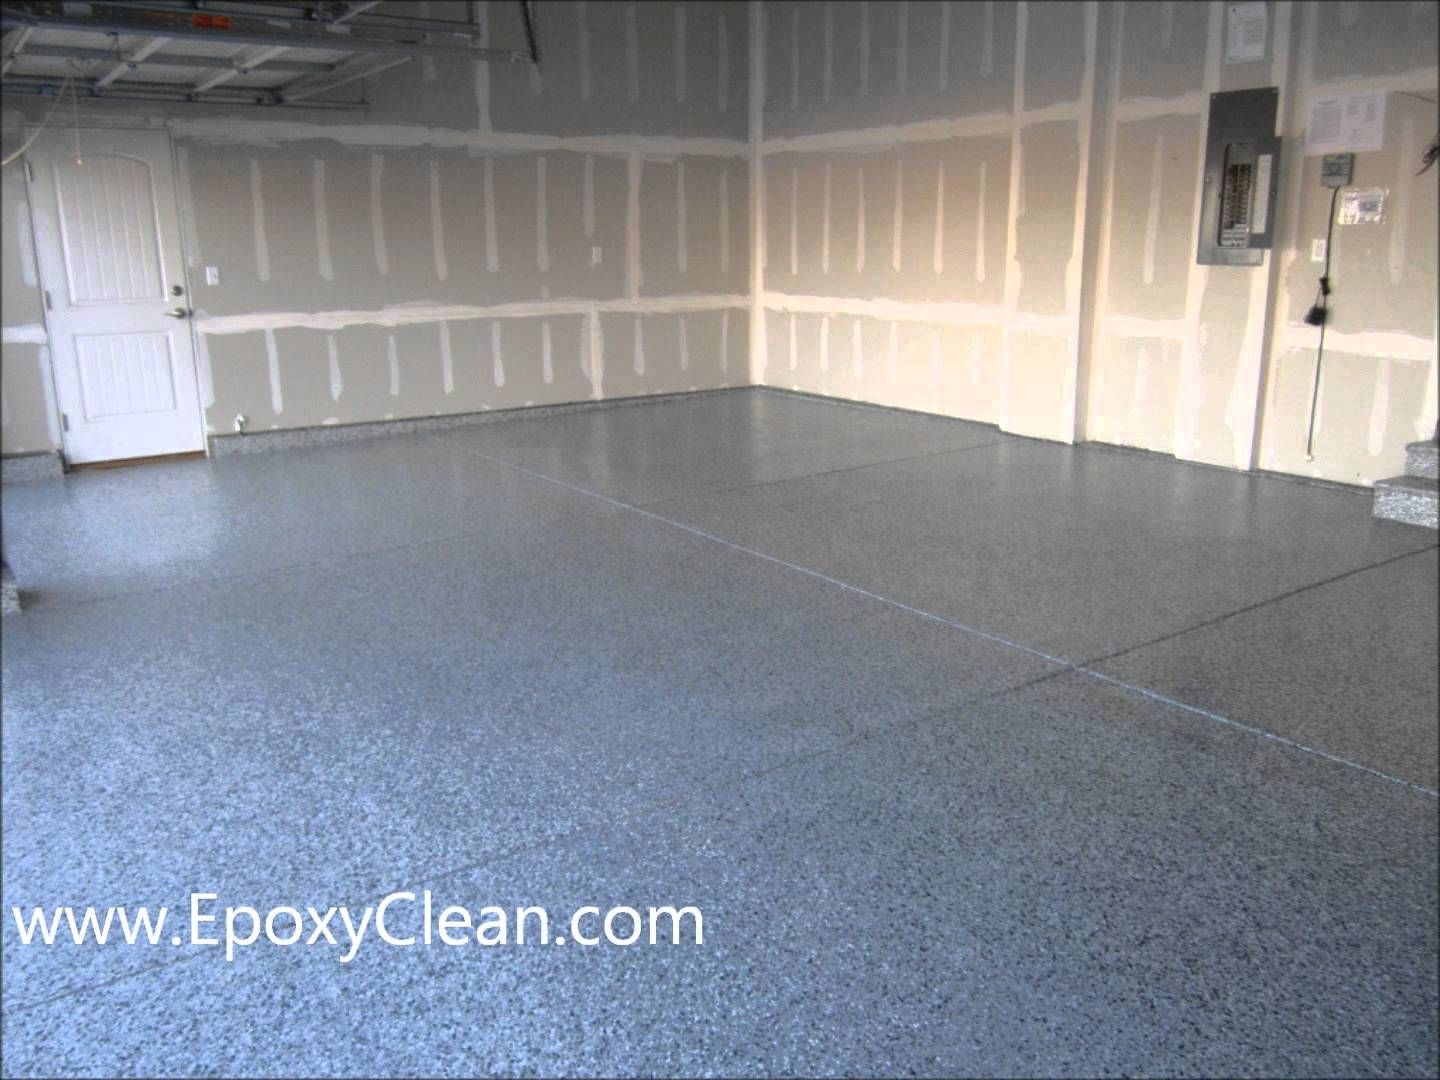 Http Www Epoxyclean Com The Best Epoxy Floor Cleaner In The Usa Specifically Designed For Epoxy Floors And Top Coats E Floor Cleaner Epoxy Floor Epoxy